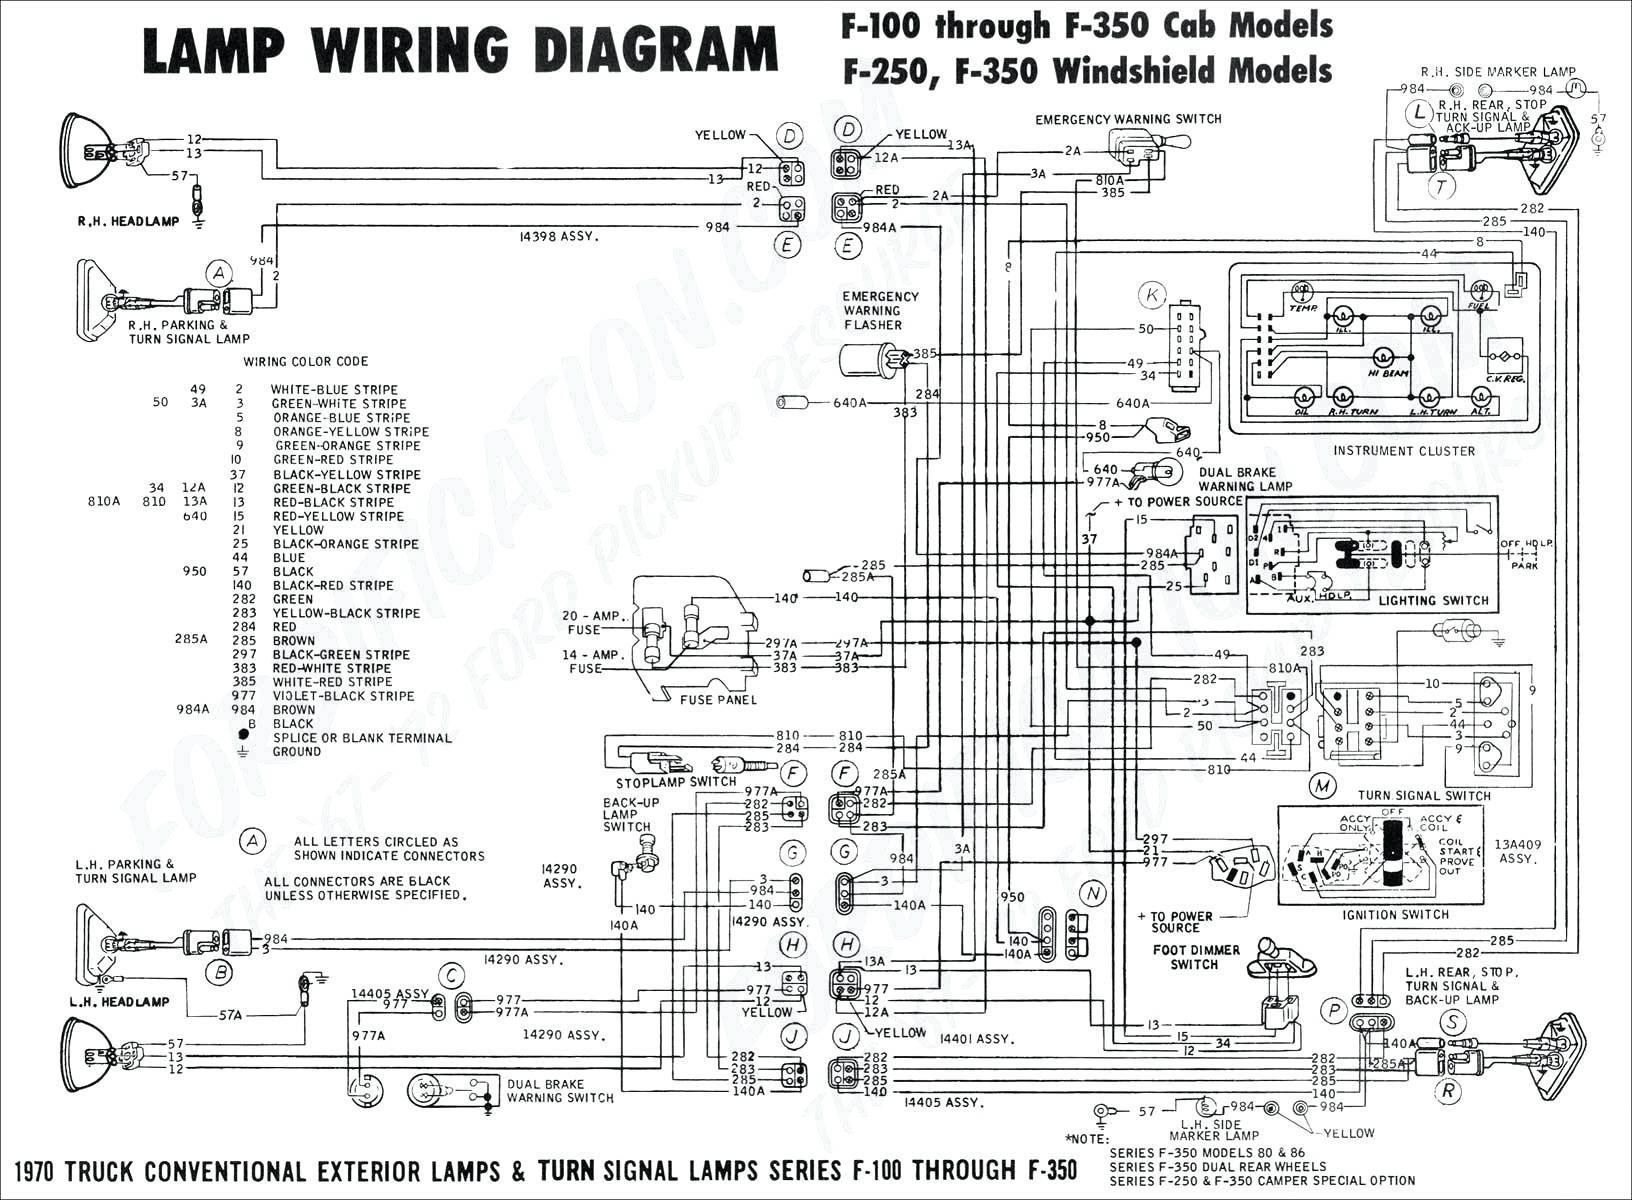 F250 Wiring Diagram - Wiring Diagram Conventions Reference Wiring Diagrams for ford Fresh ford Ranger Engine Diagram Wiring 20s